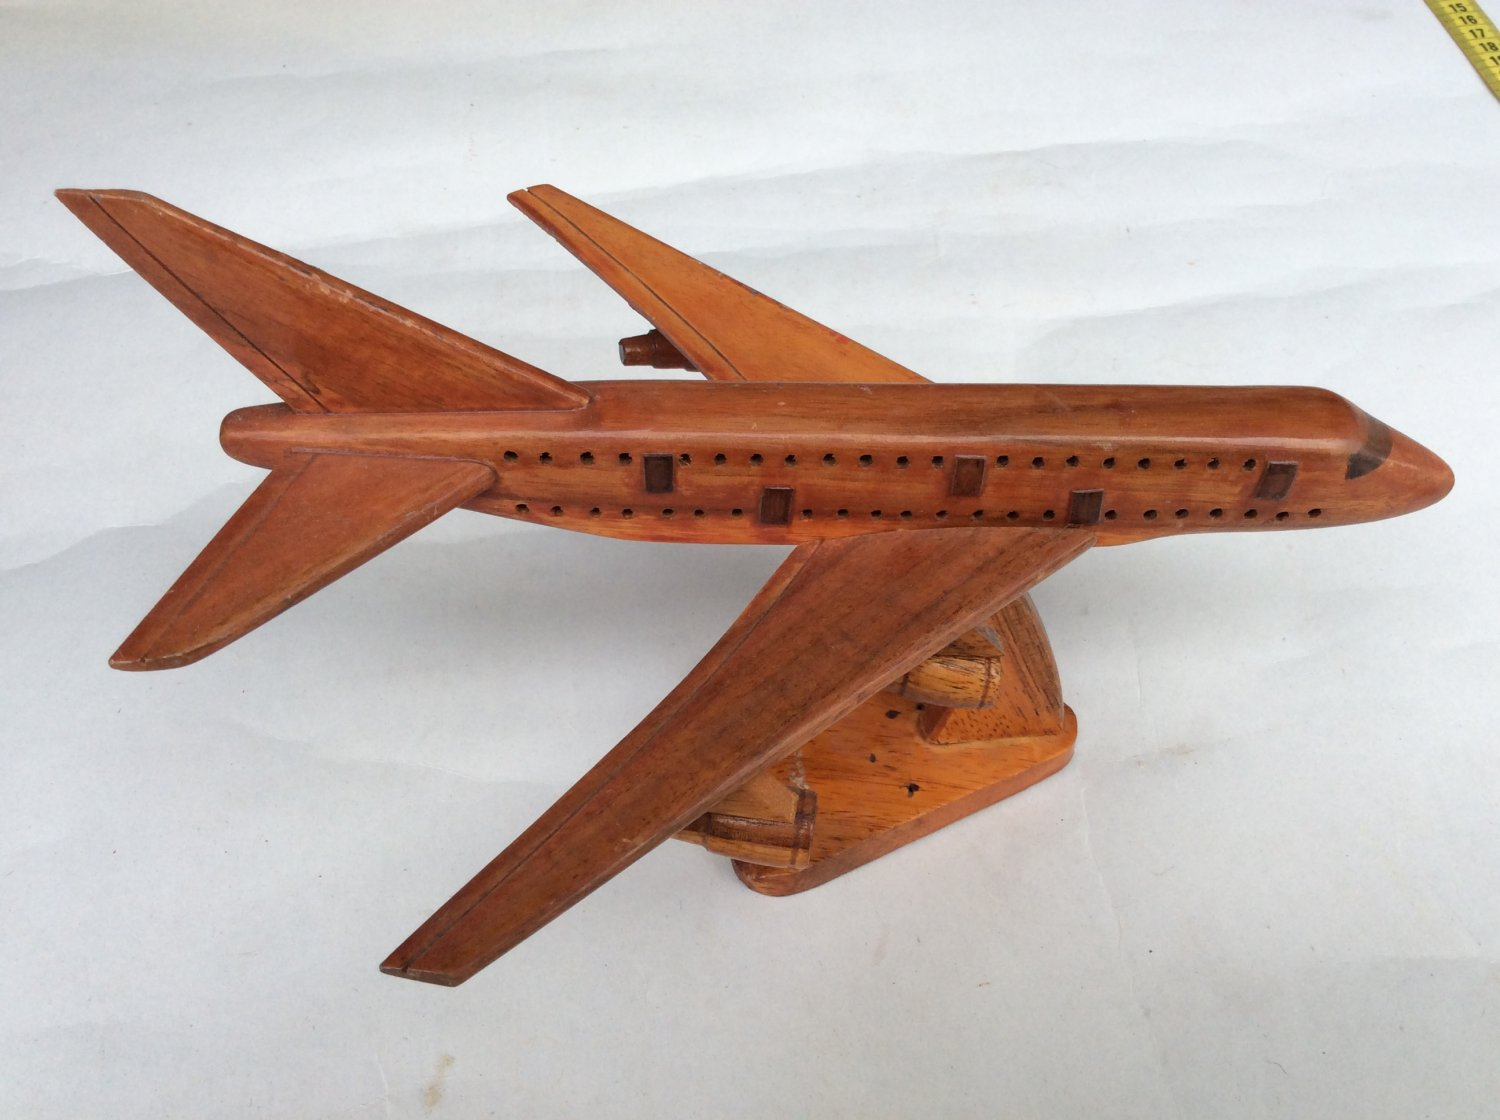 Wooden miniature airplane